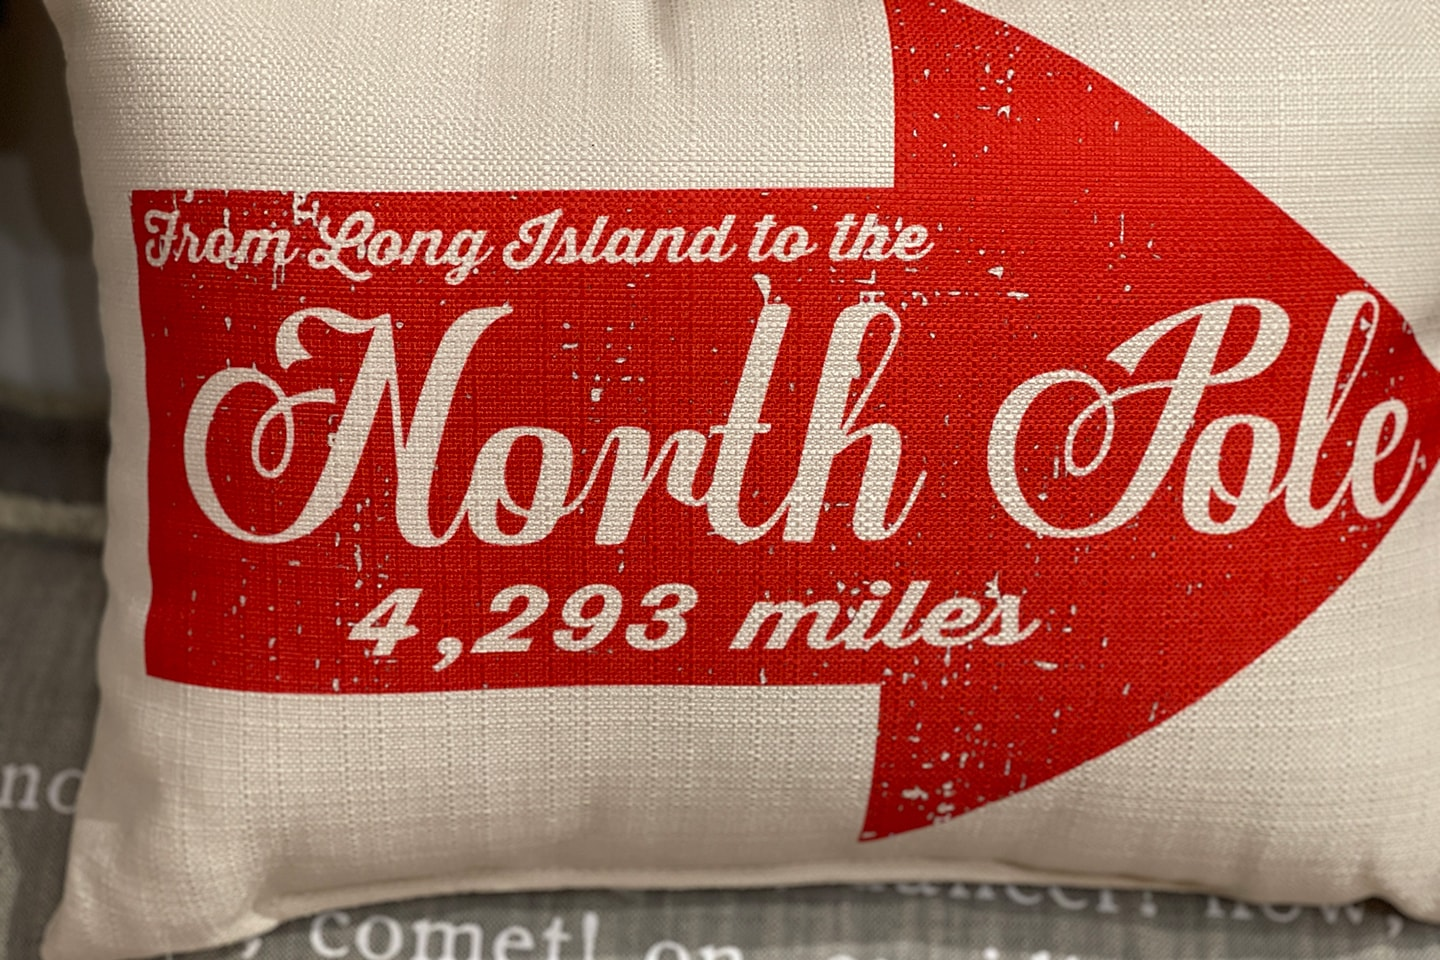 From Long Island to the North Pole - 4,293 miles